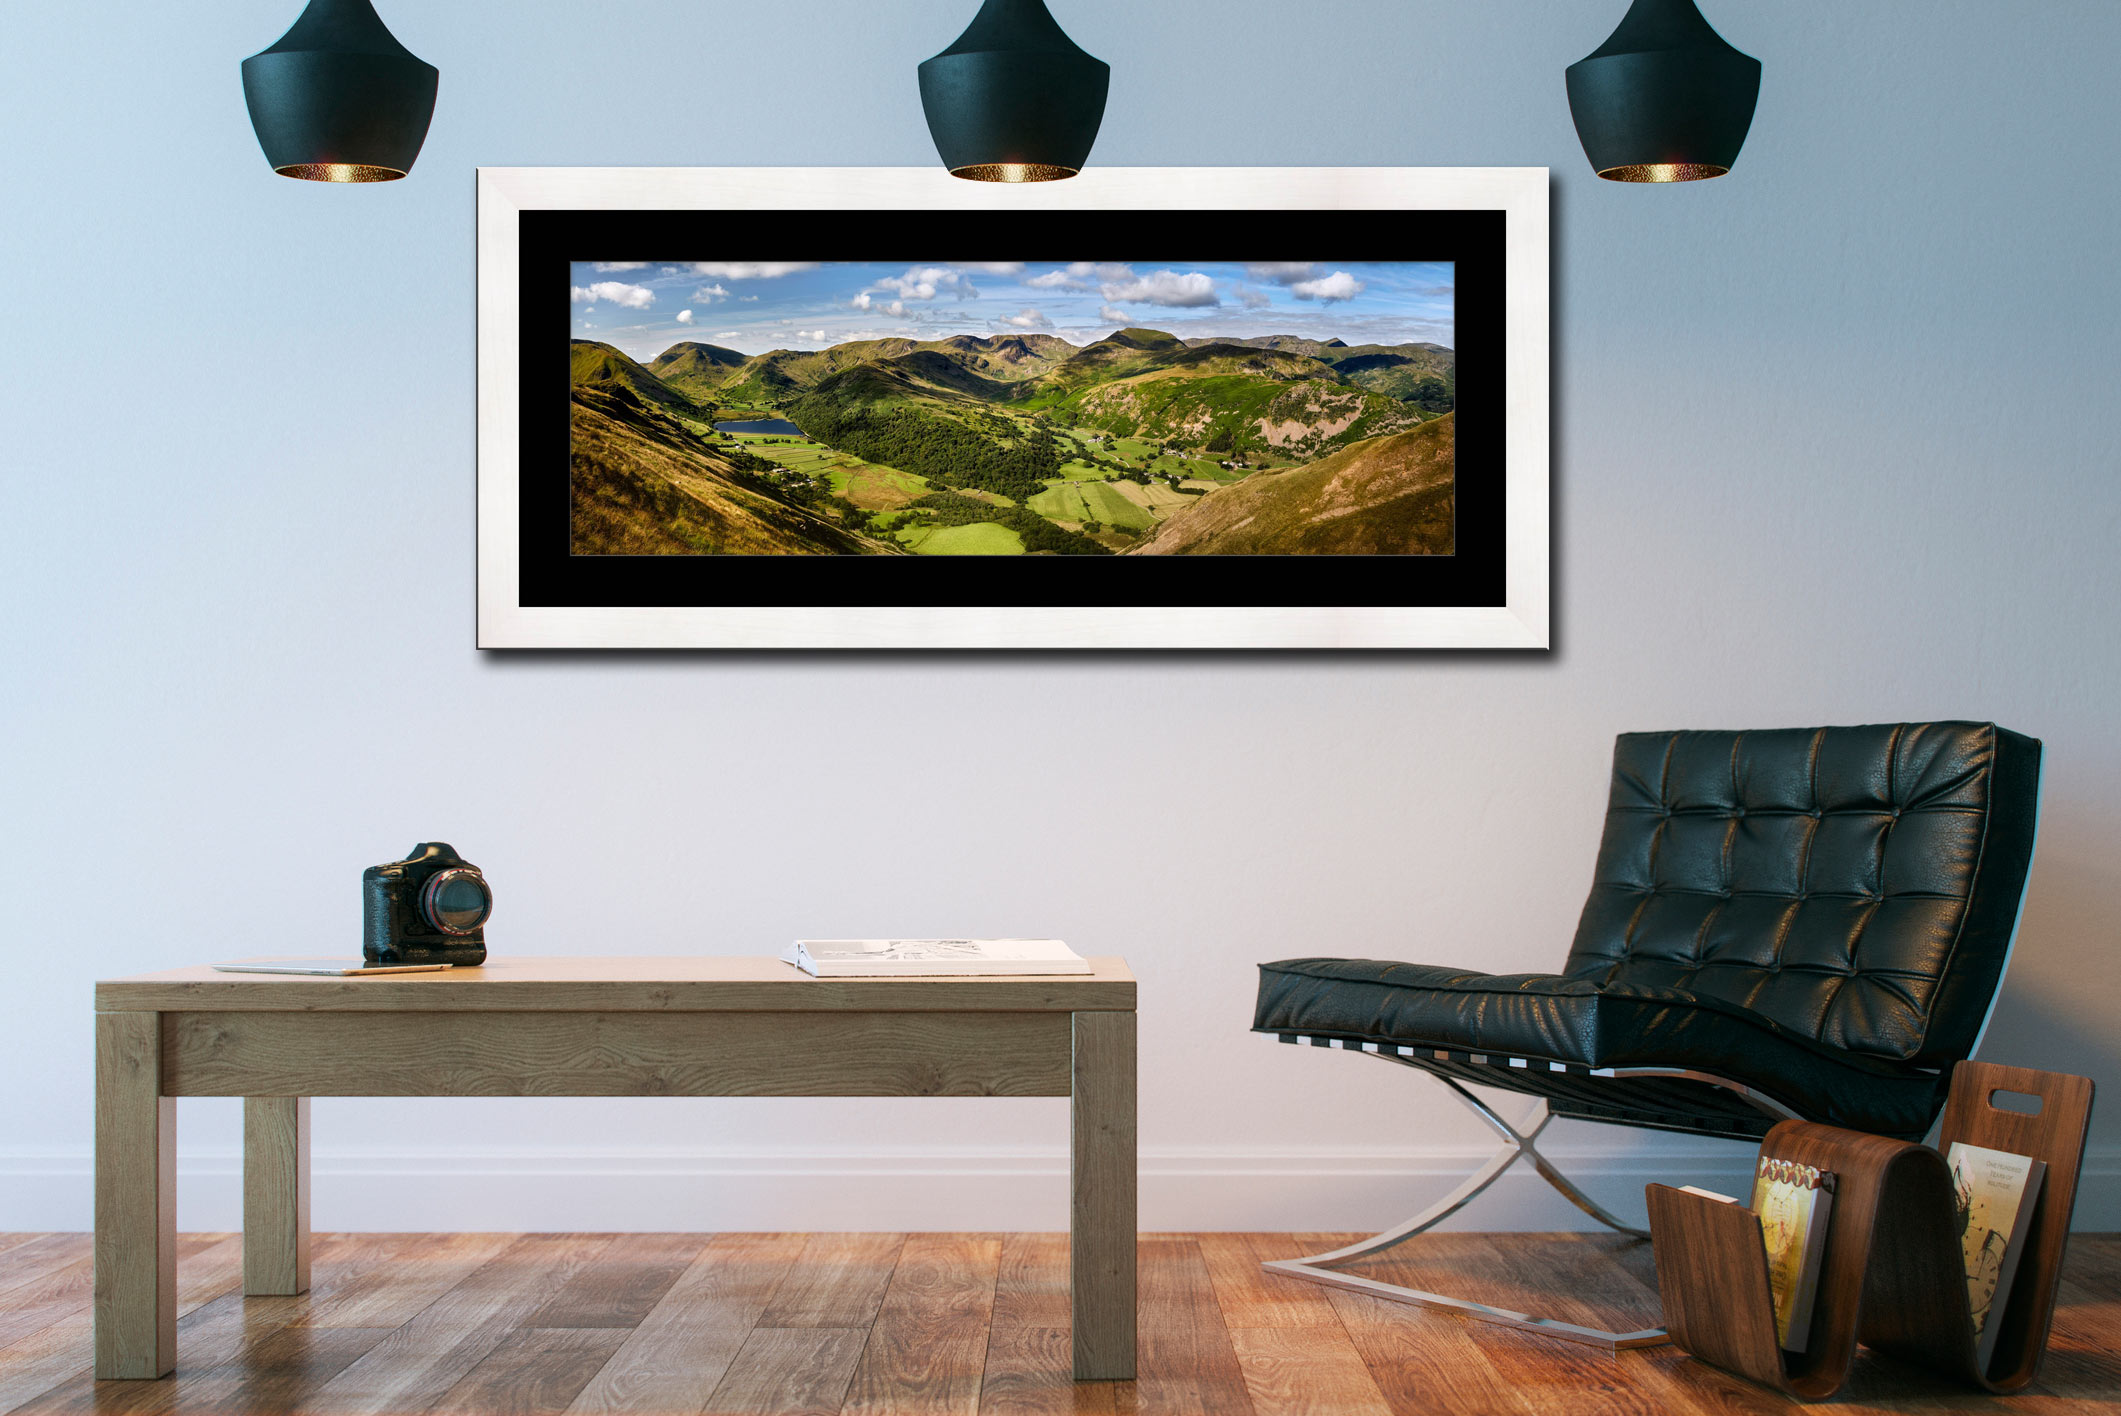 Deepdale and Dovedale Panorama - Framed Print with Mount on Wall